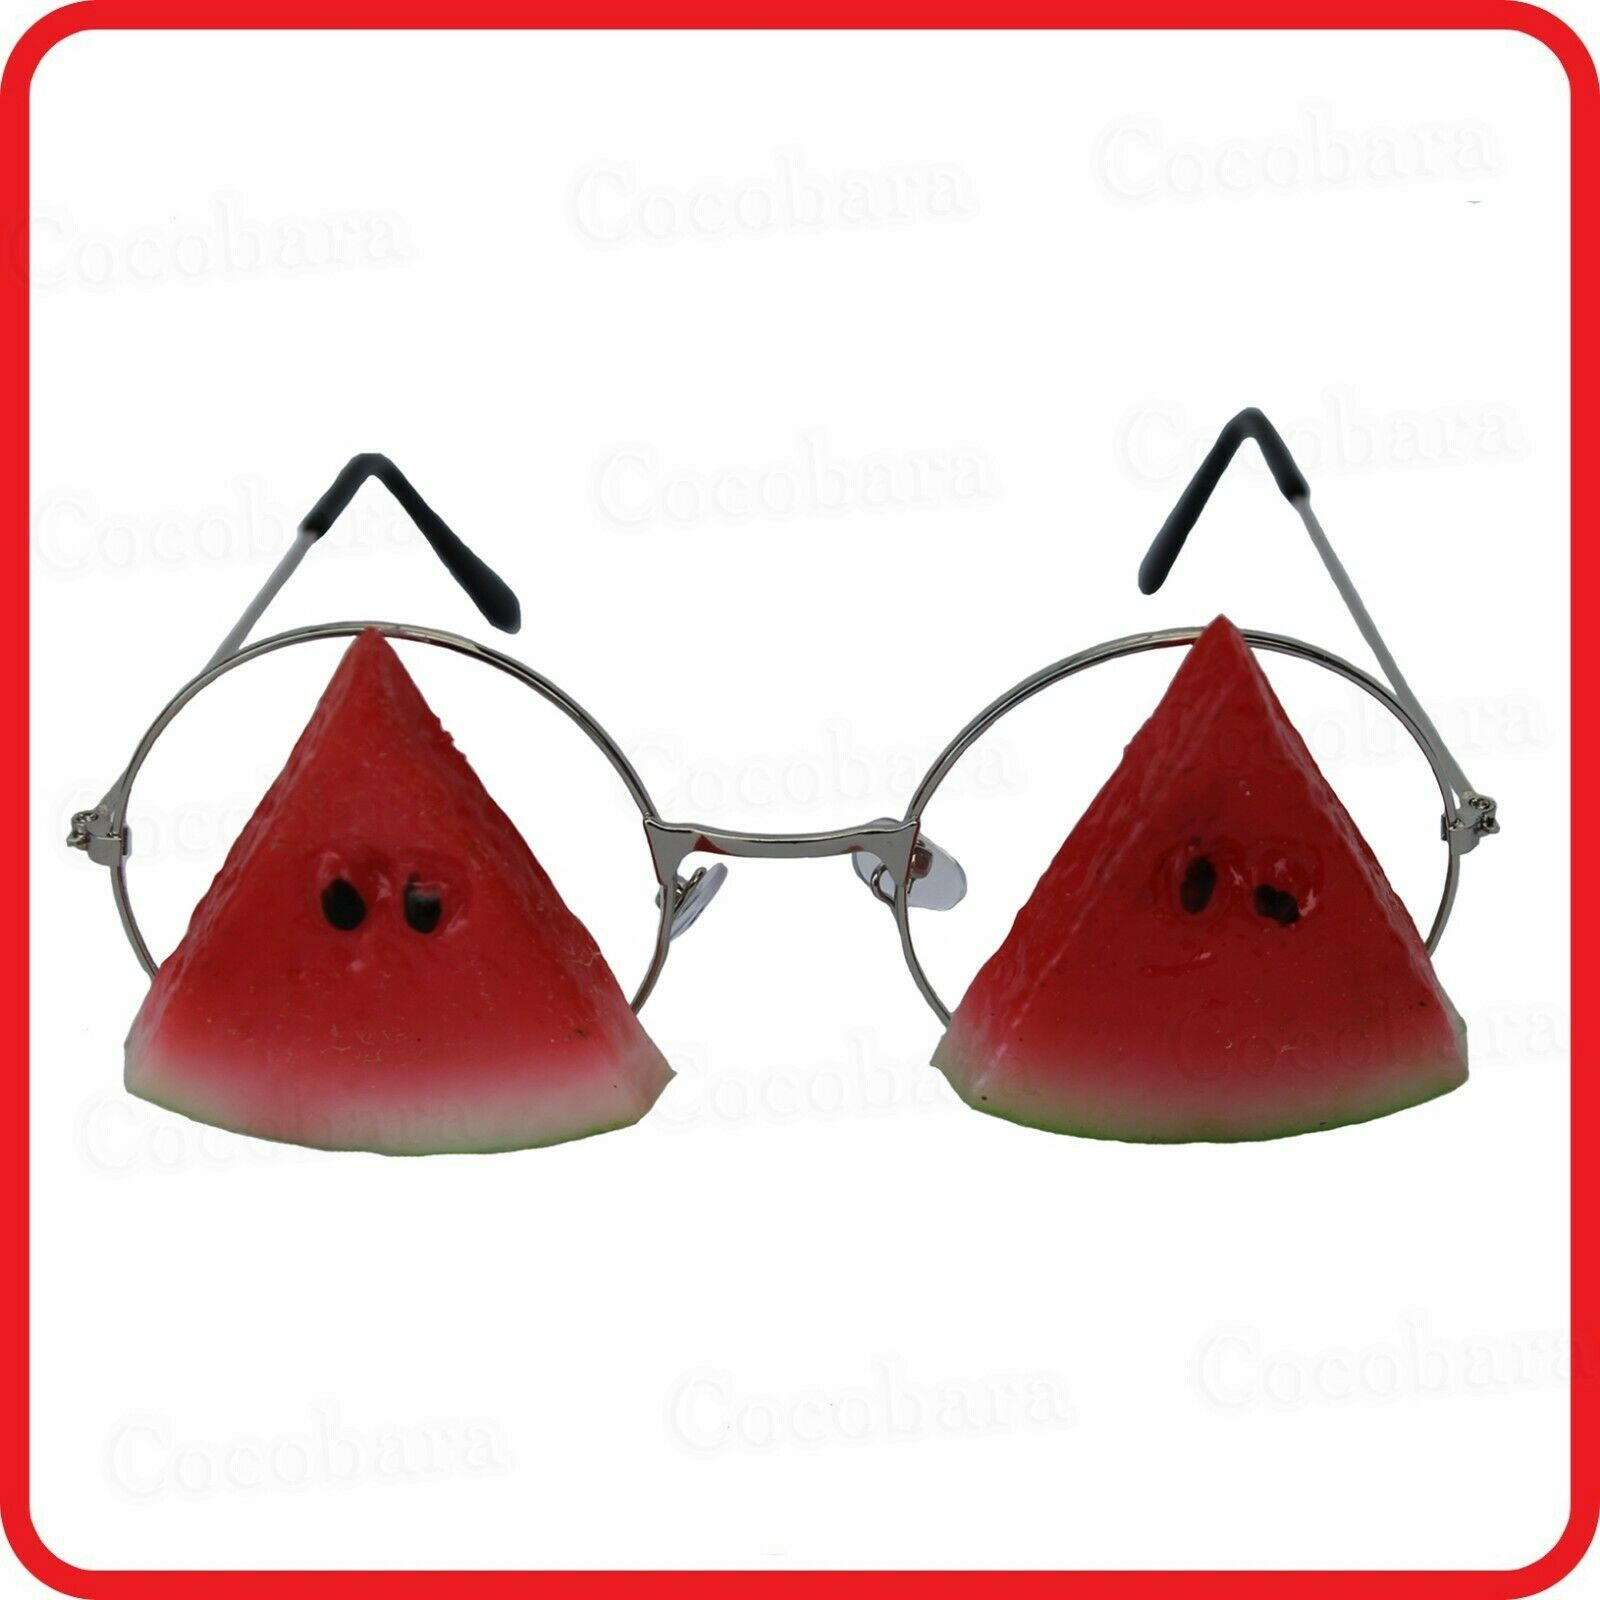 WATERMELON SLICE SLICES GLASSES SUNGLASSES-FUNNY-COSTUME-PARTY-DRESS UP-COSPLAY